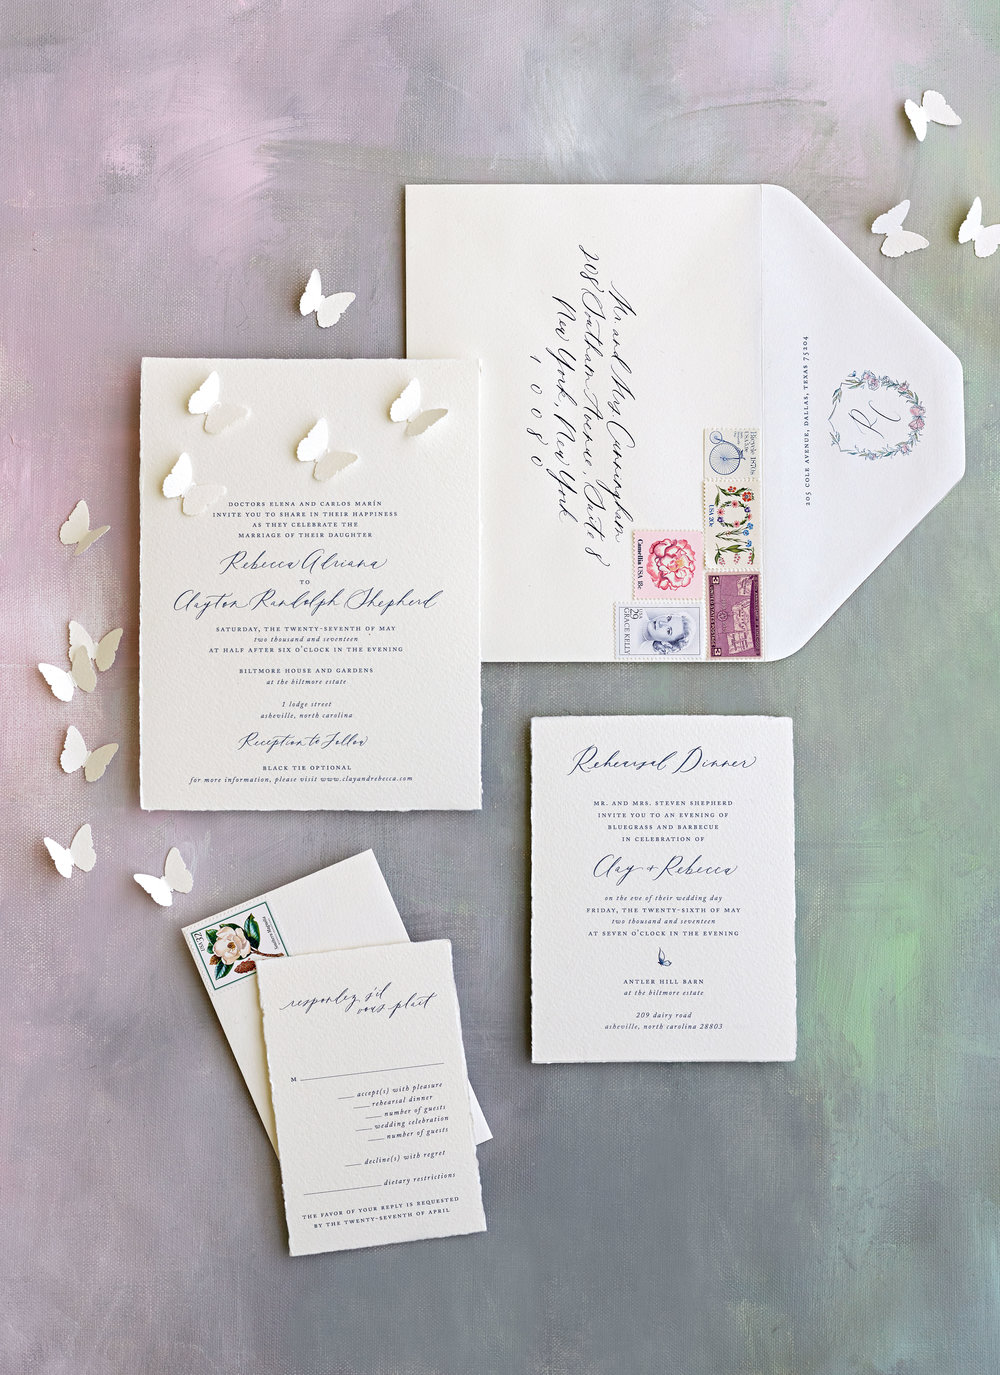 rebecca-clay-wedding-north-carolina-stationery-103228793.jpg